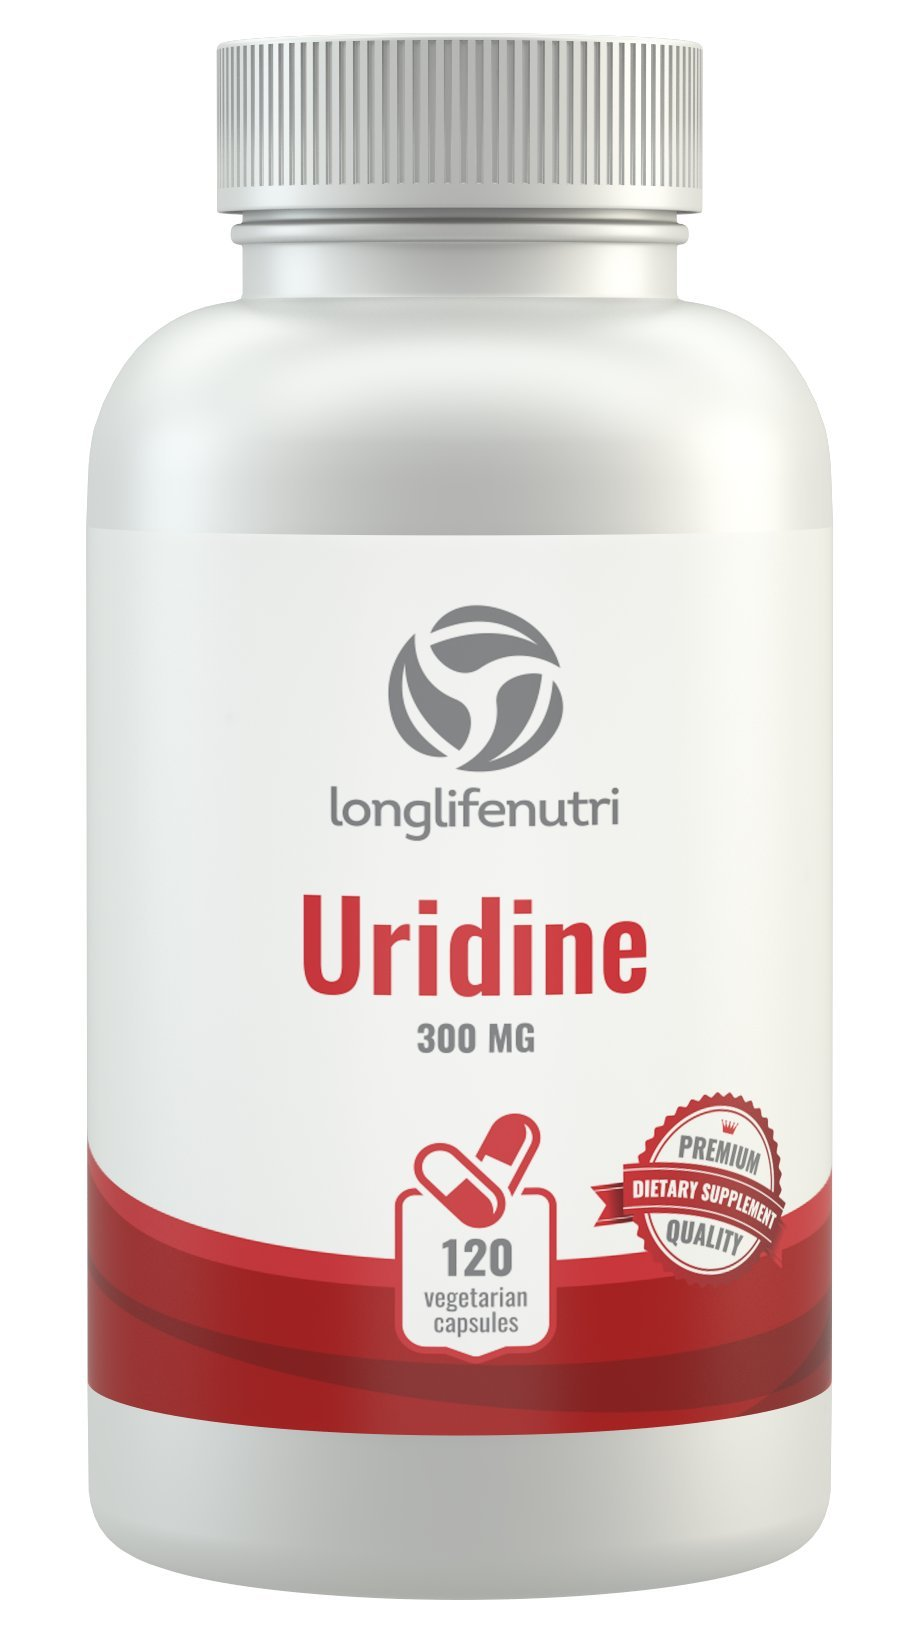 Uridine Monophosphate 300mg - 120 Vegetarian Capsules | Made In Usa | Choline Enhancer | Supports Cholinergic Brain & Memory Function | Helps Synapses Growth | 300 mg Pure Powder Pills Complex Formula by LongLifeNutri (Image #9)